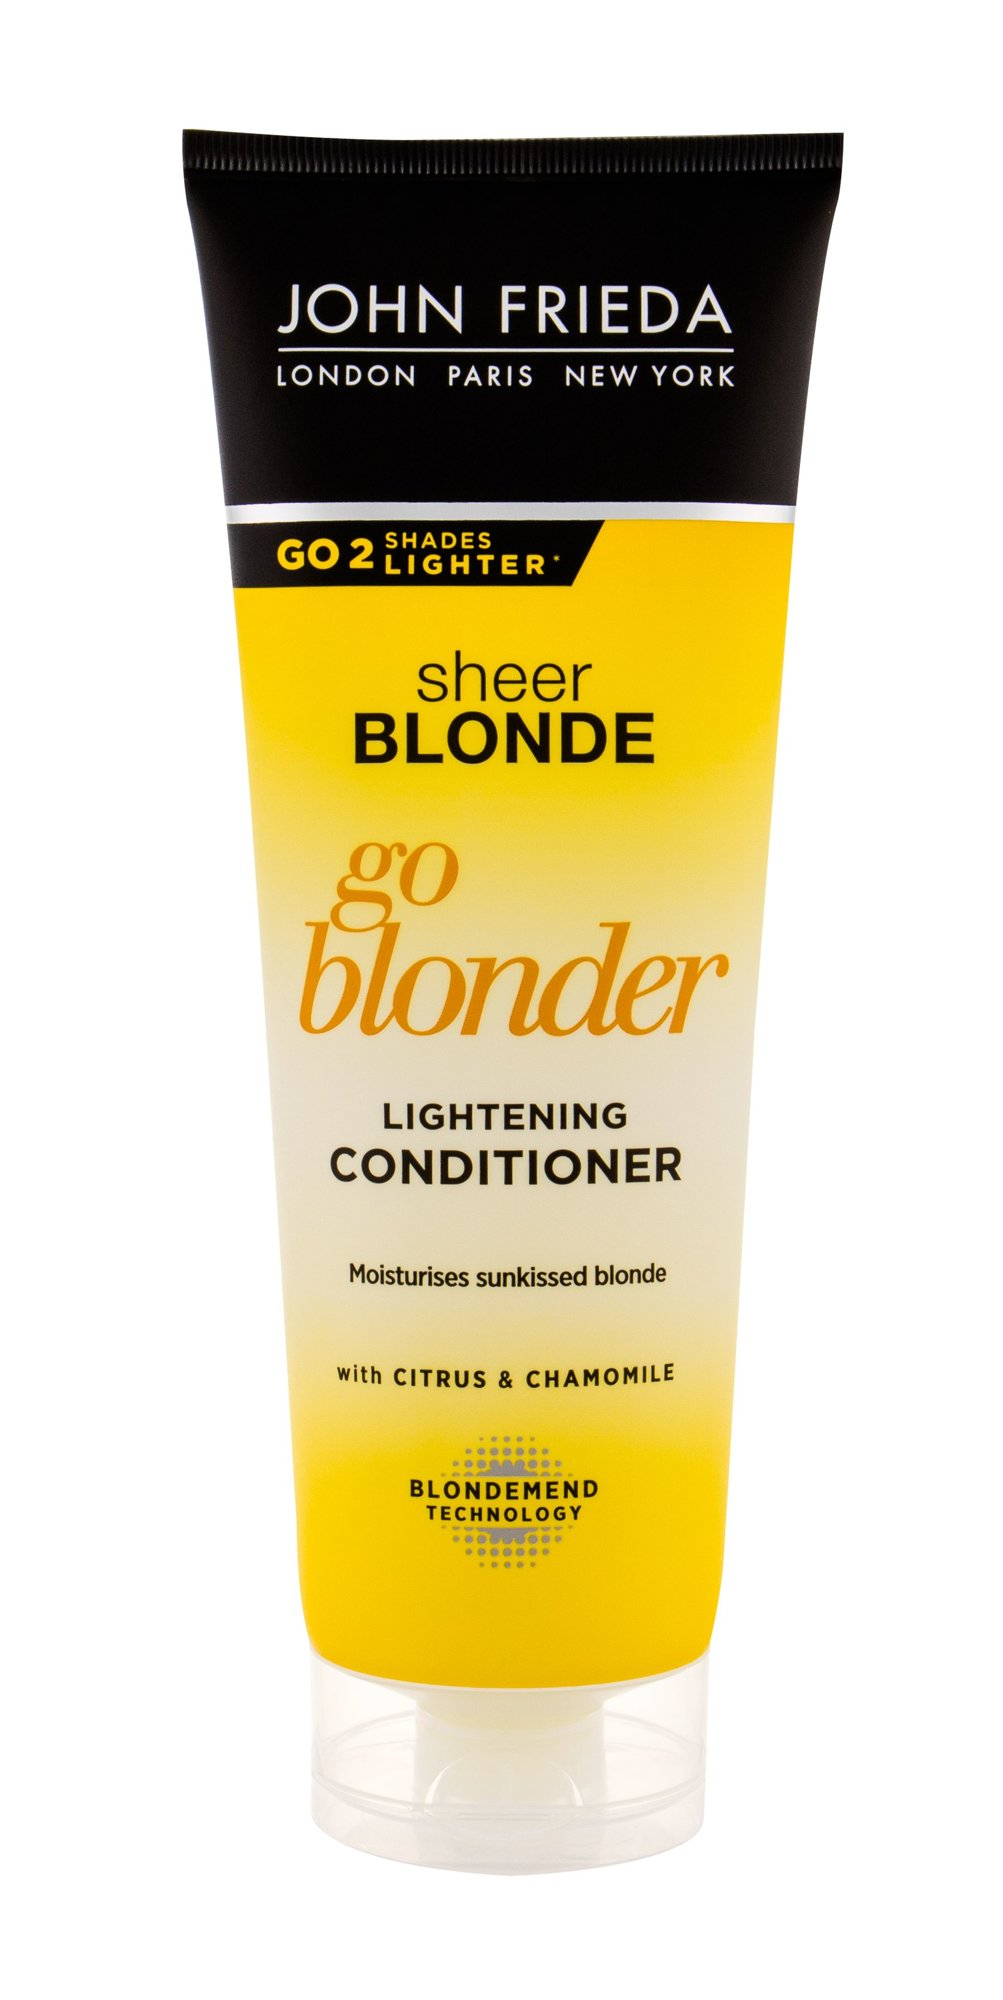 John Frieda Sheer Blonde Conditioner 250ml  Go Blonder